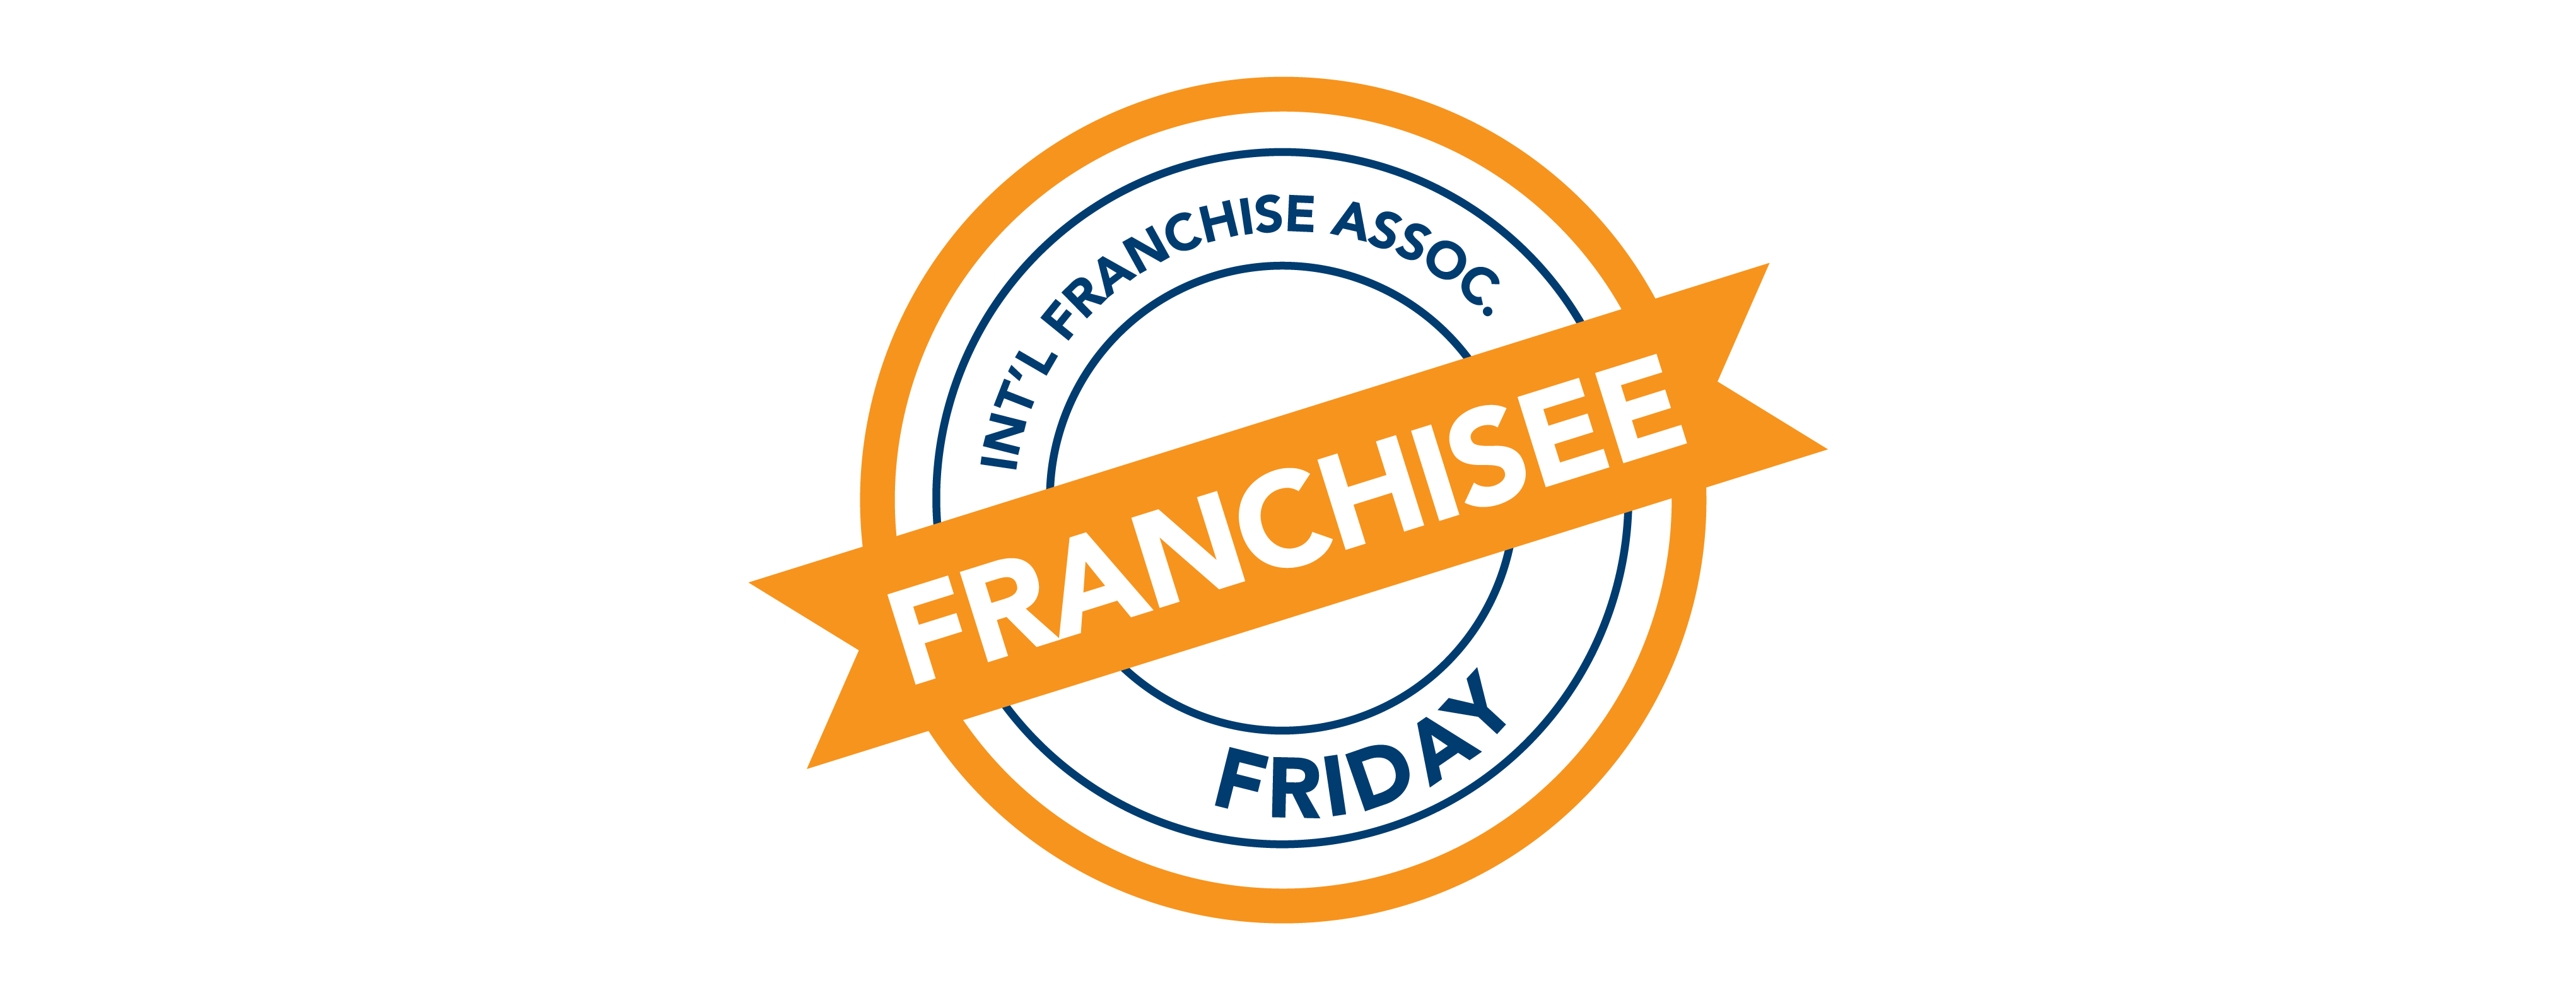 Franchisee Friday.